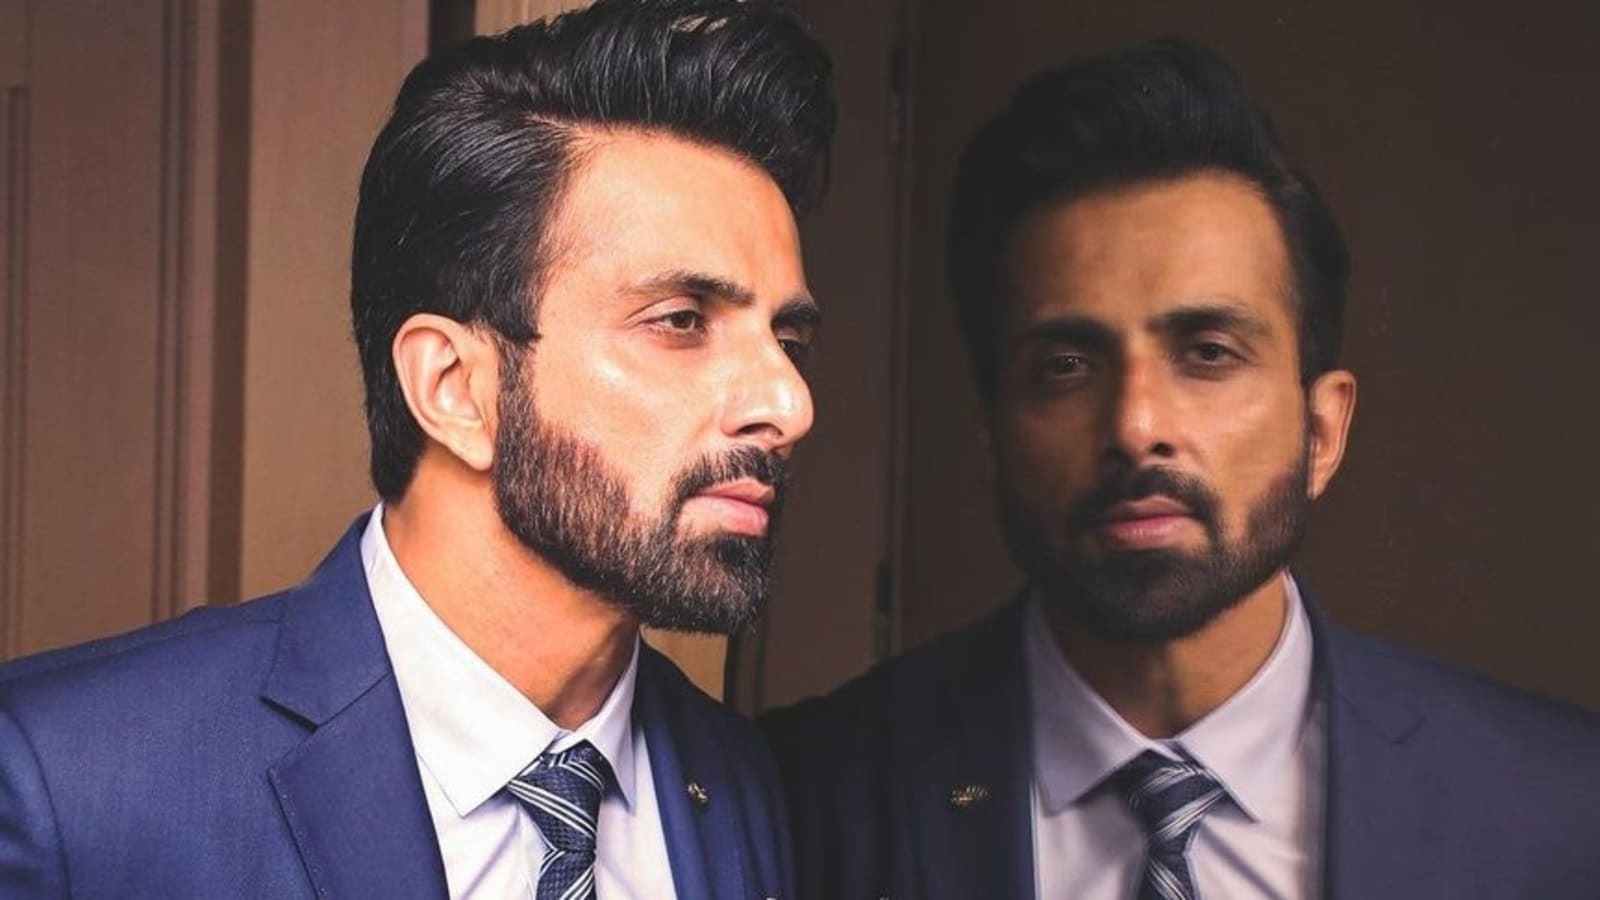 Photo of Sonu Sood has funny reply as man asks for an iPhone for his girlfriend: 'Tera kuch nahi rahega'